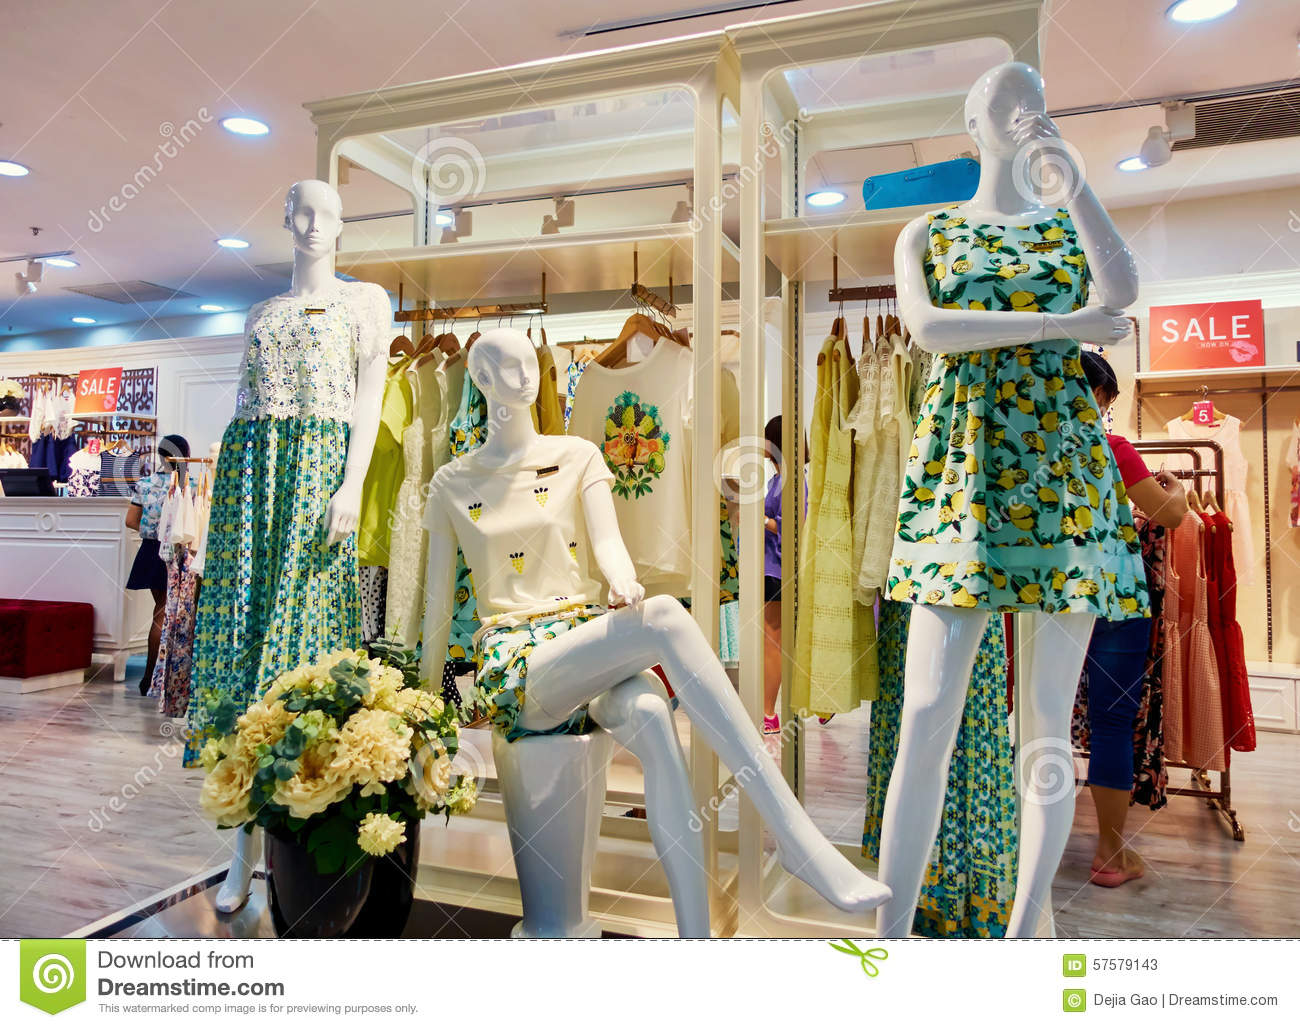 58d5d81ad0ead Interior of modern fashion boutique women clothing retail store with  mannequins. Clothes shop with female mannequin display.